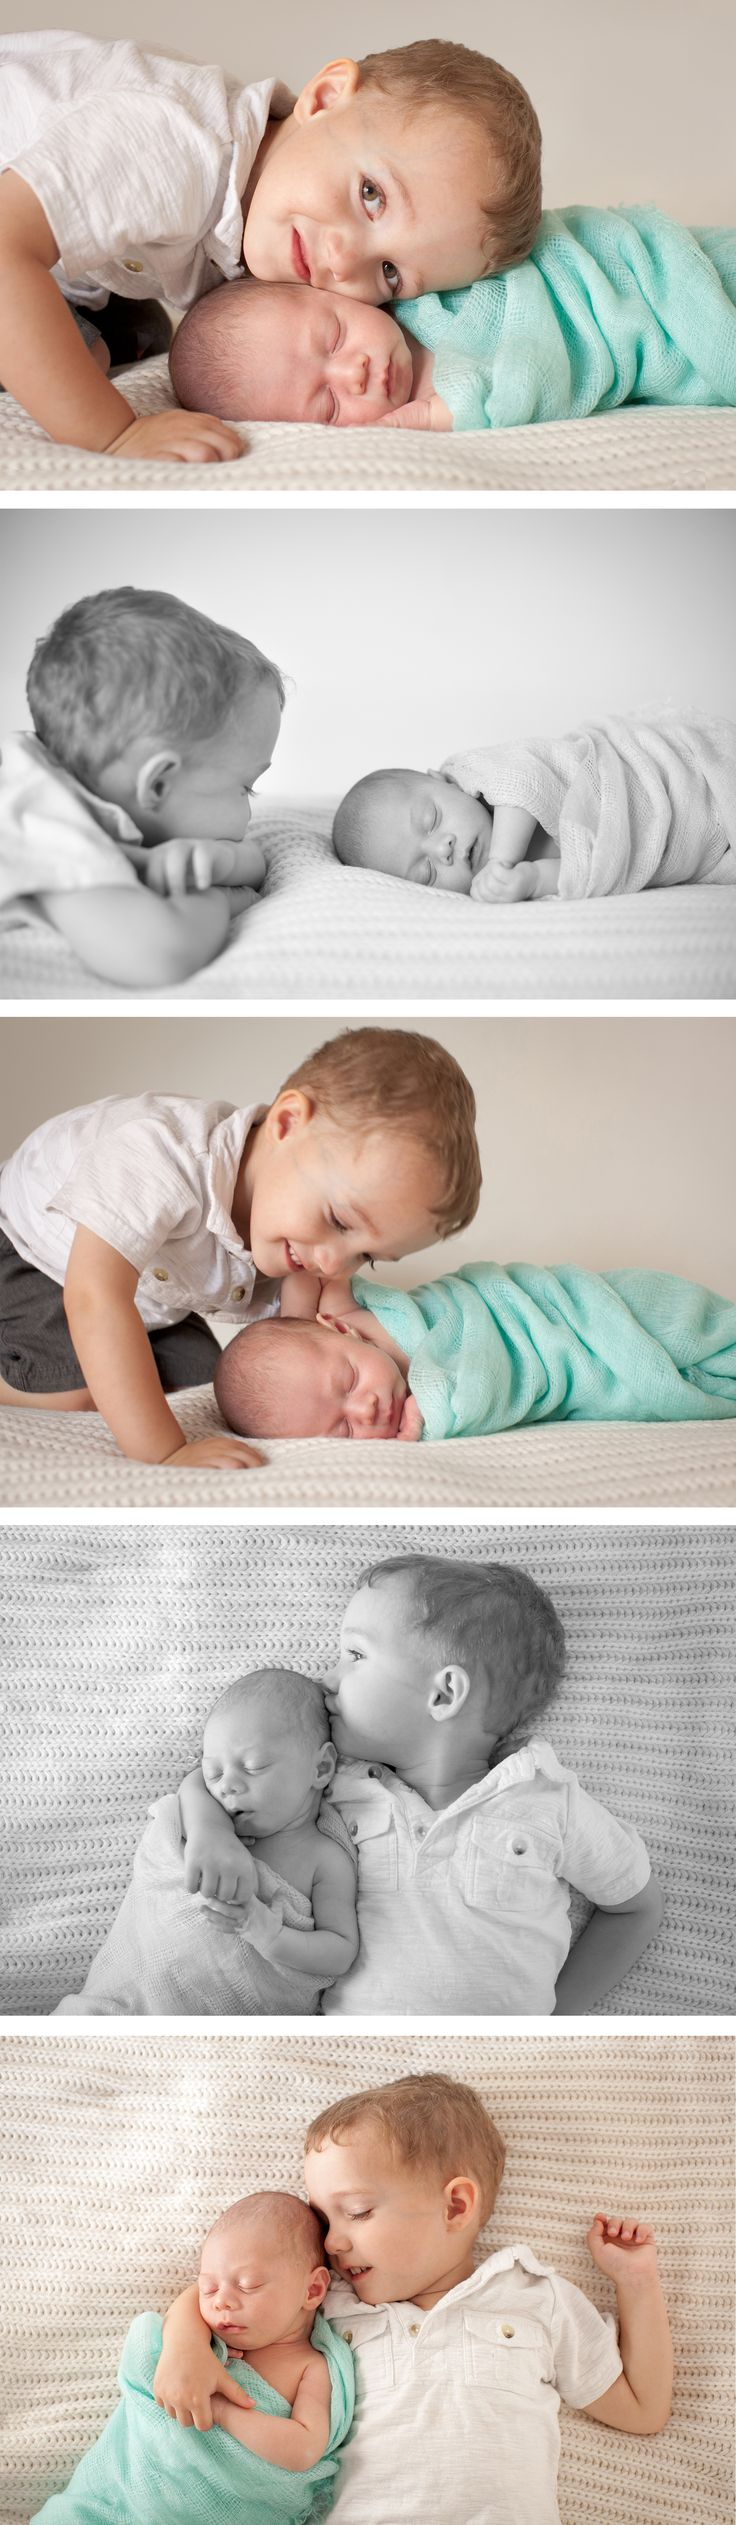 Number 2 from the top is a Cute Pose! Posing for a newborn and older sibling.